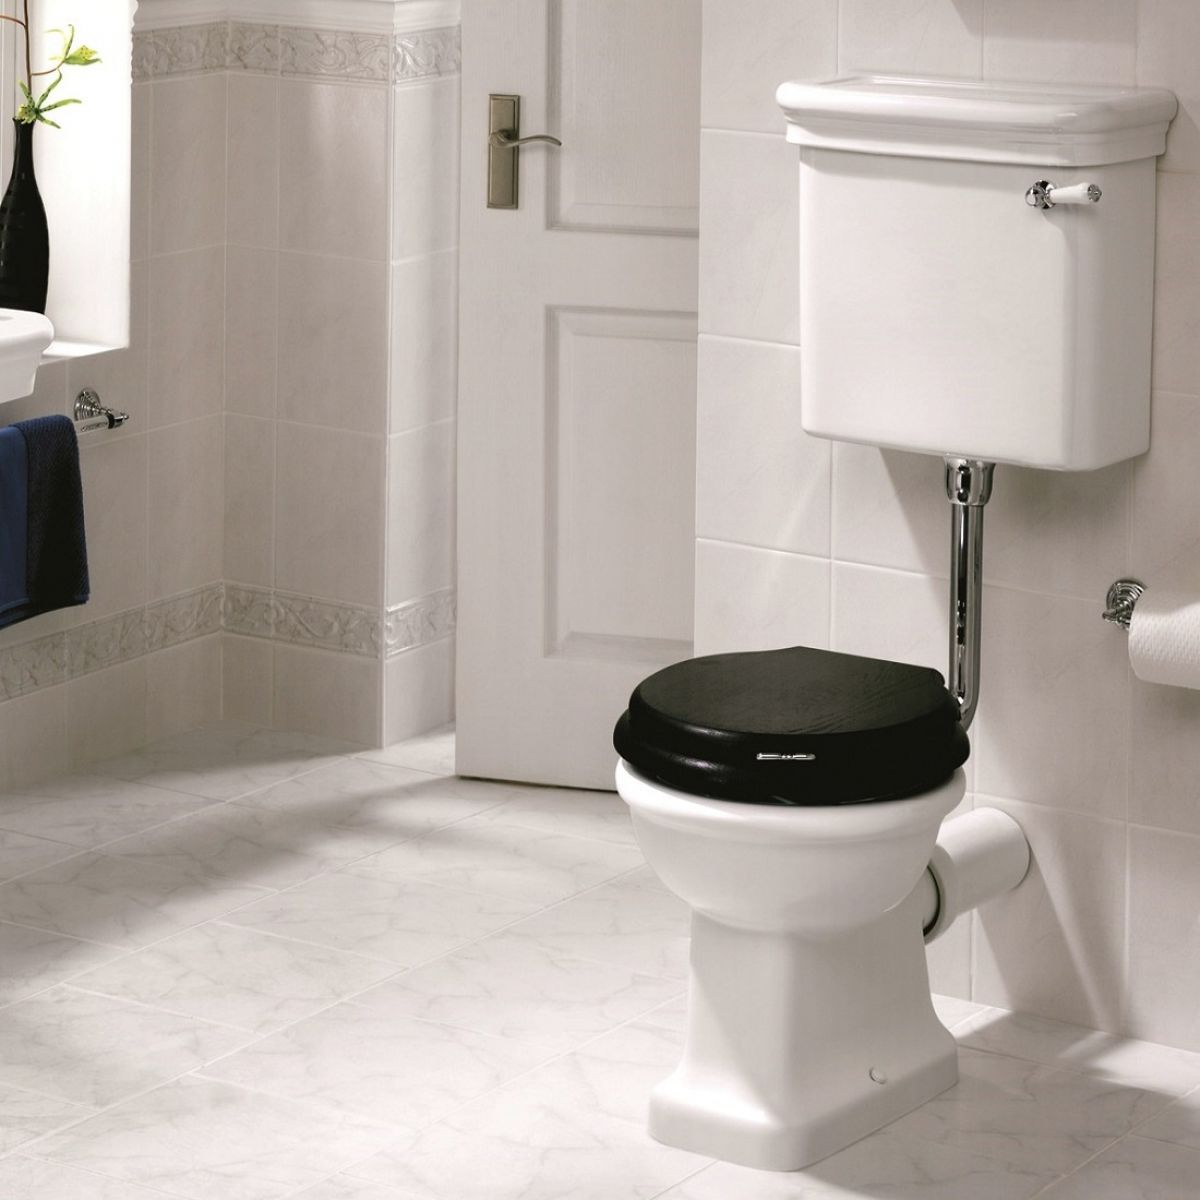 image example of a low level toilet